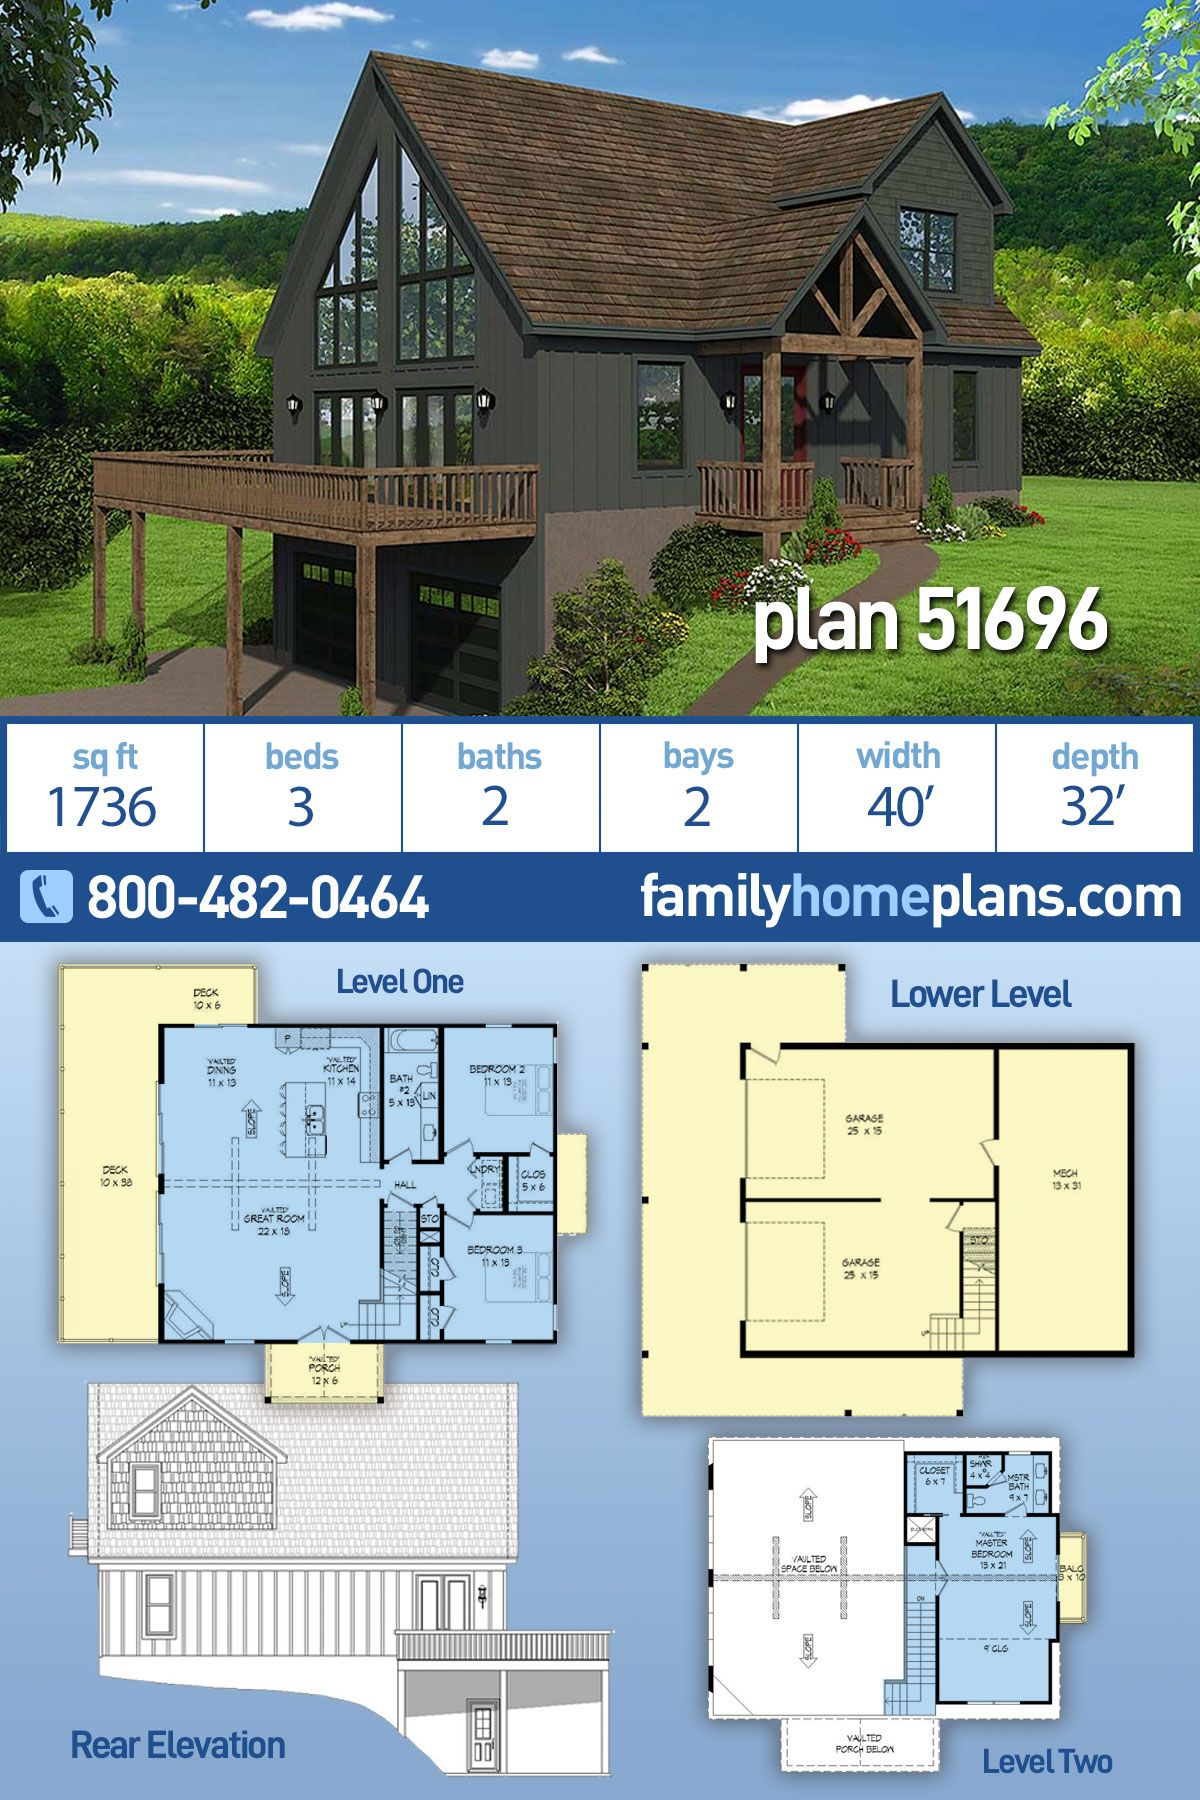 Contemporary Country Craftsman House Plan 51696 With 3 Beds 2 Baths 2 Car Garage Craftsman Style House Plans House Plans Bungalow House Plans